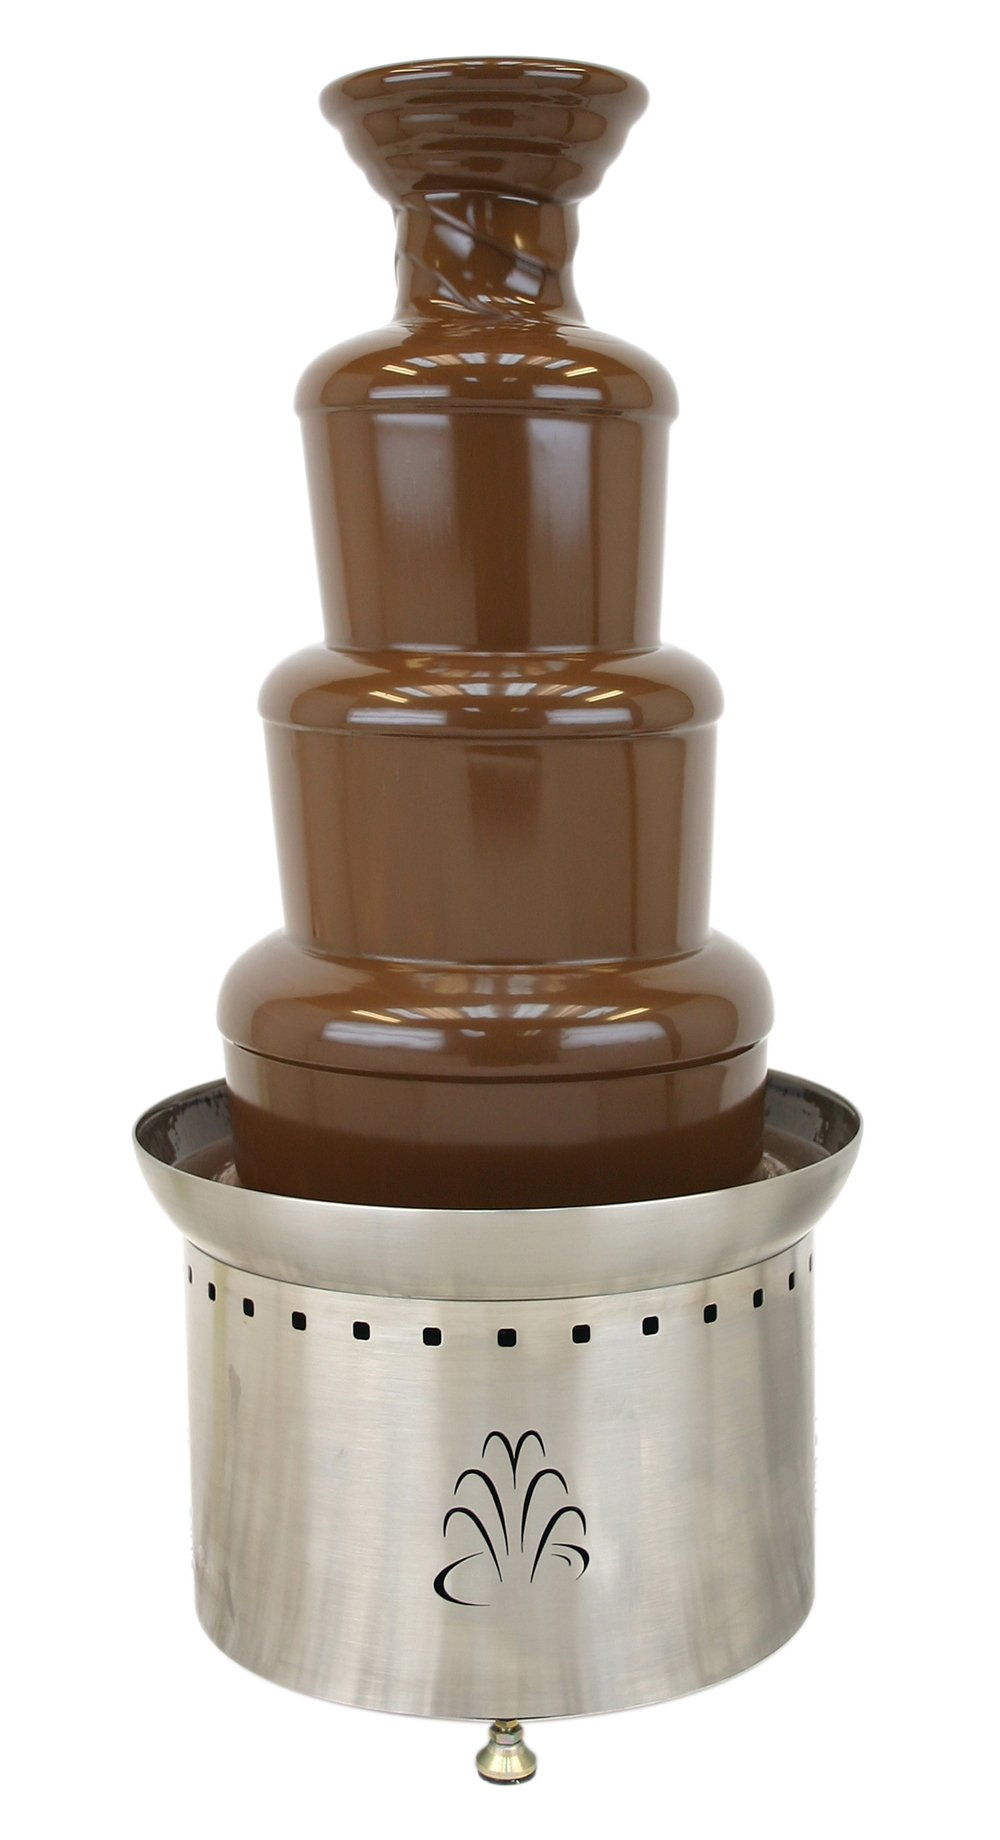 Buffet Enhancements Stainless Steel 3 Tier 35 Inch Chocolate Fountain